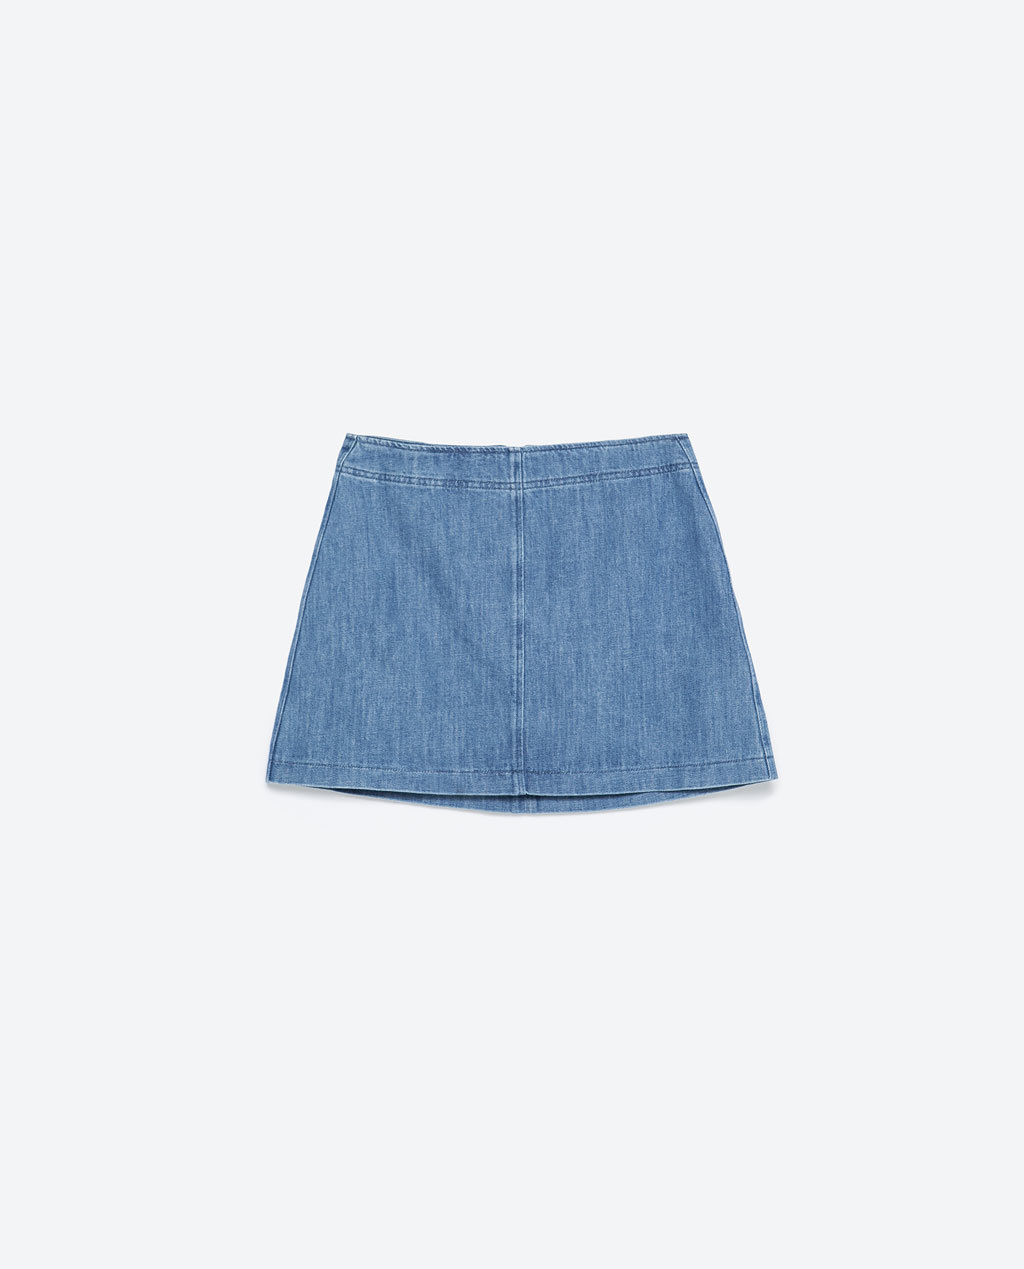 Denim Skirt - length: mini; pattern: plain; waist: high rise; predominant colour: denim; occasions: casual, holiday; style: a-line; fibres: cotton - stretch; texture group: denim; fit: straight cut; pattern type: fabric; season: s/s 2015